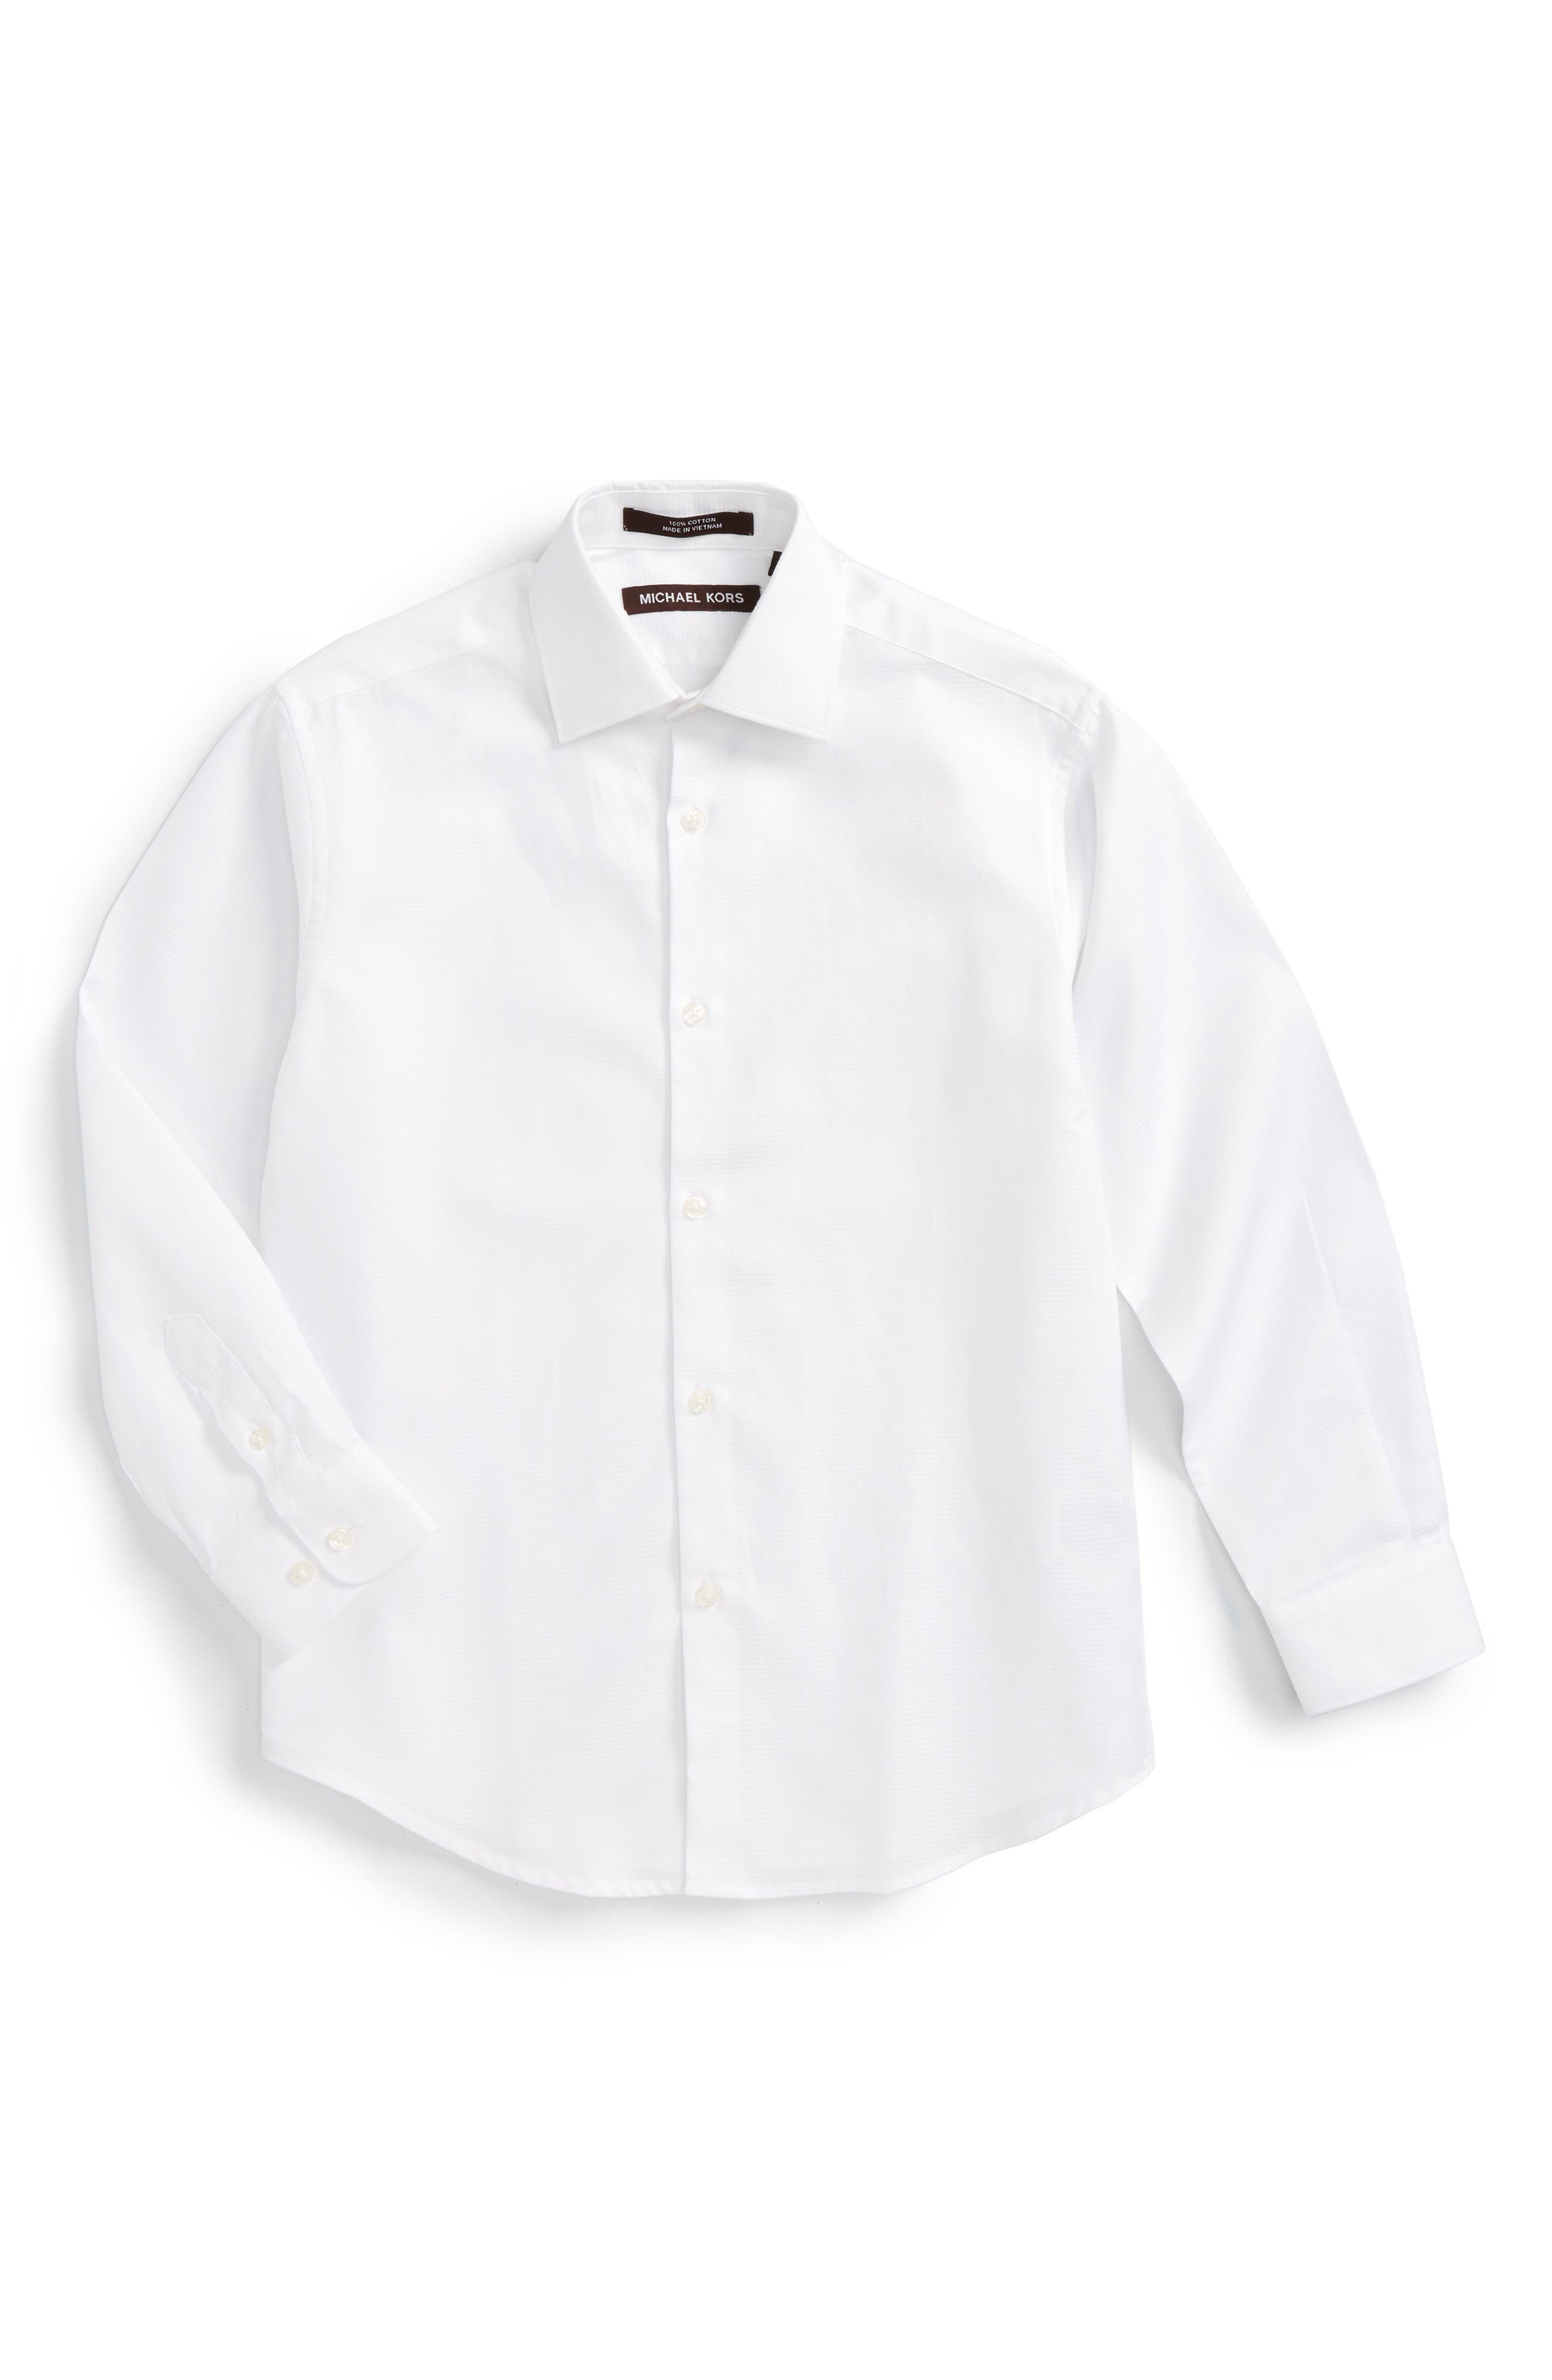 Solid Dress Shirt,                         Main,                         color, White